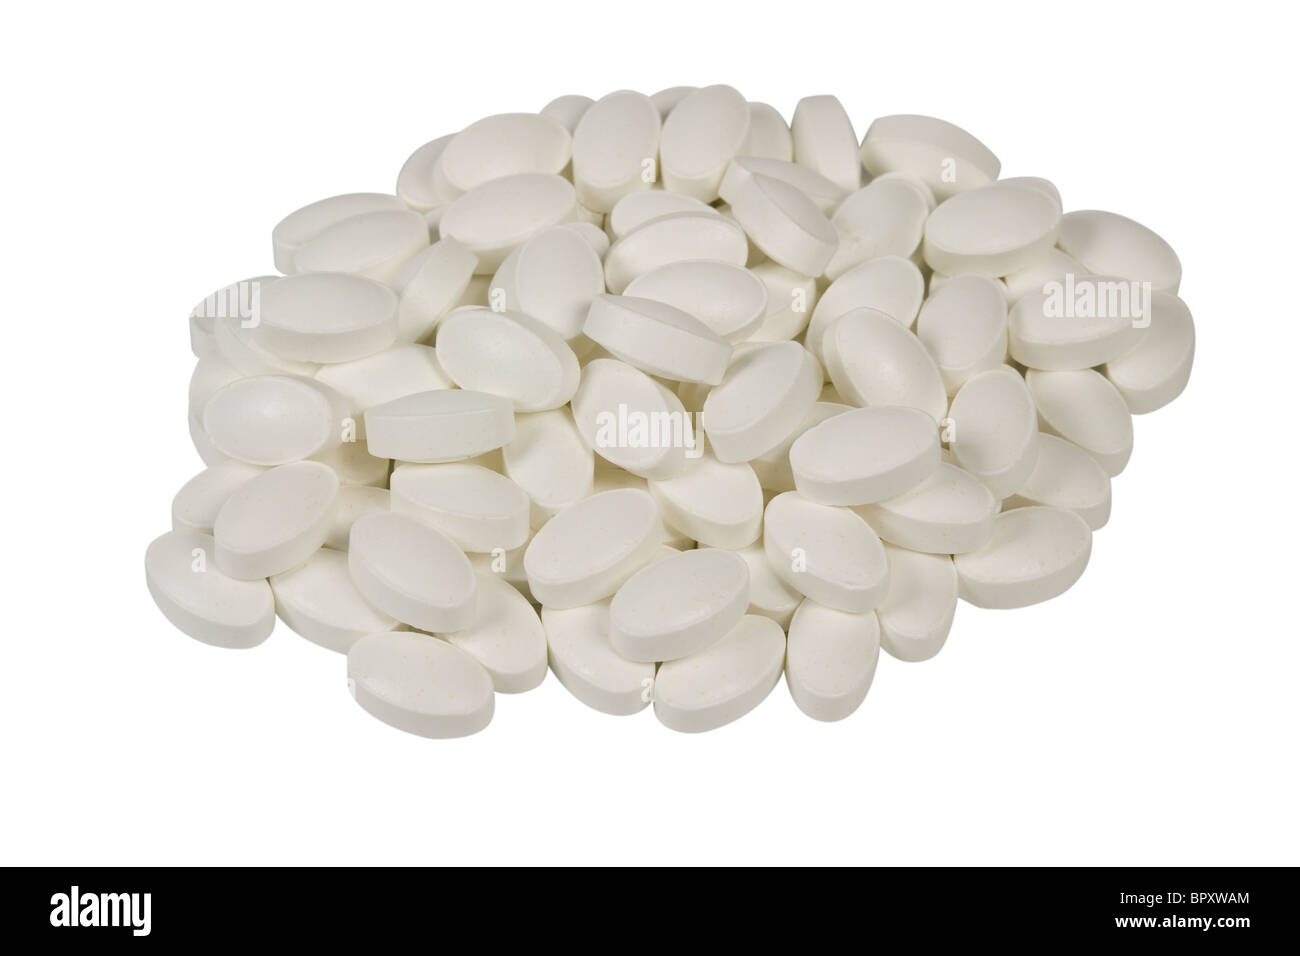 pile of white tablets - Stock Image